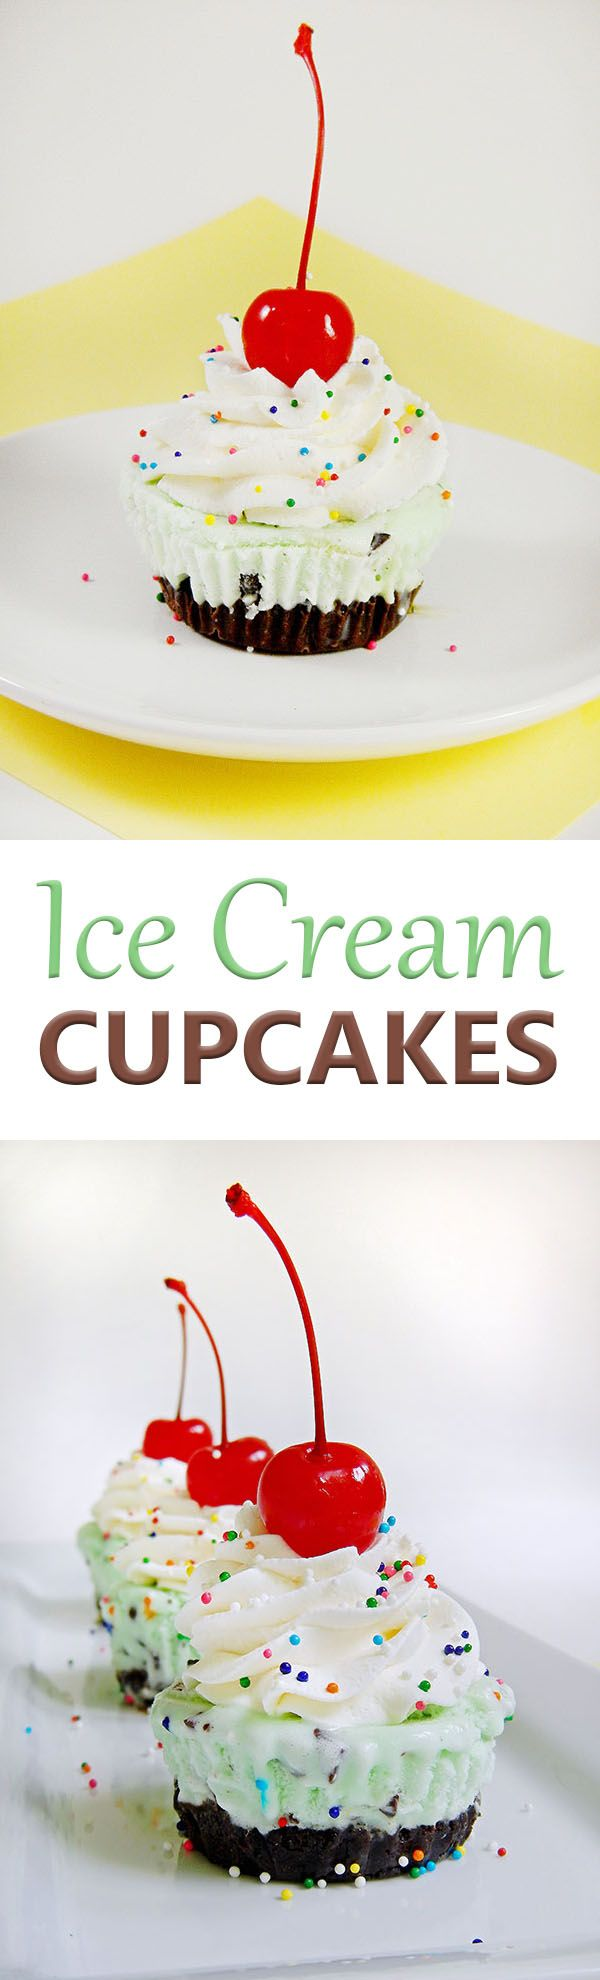 Ice Cream Cupcakes Mini ice cream cakes with crushed cookie crusts and homemade whipped cream. A great no-bake treat for Birthday parties and summer events.